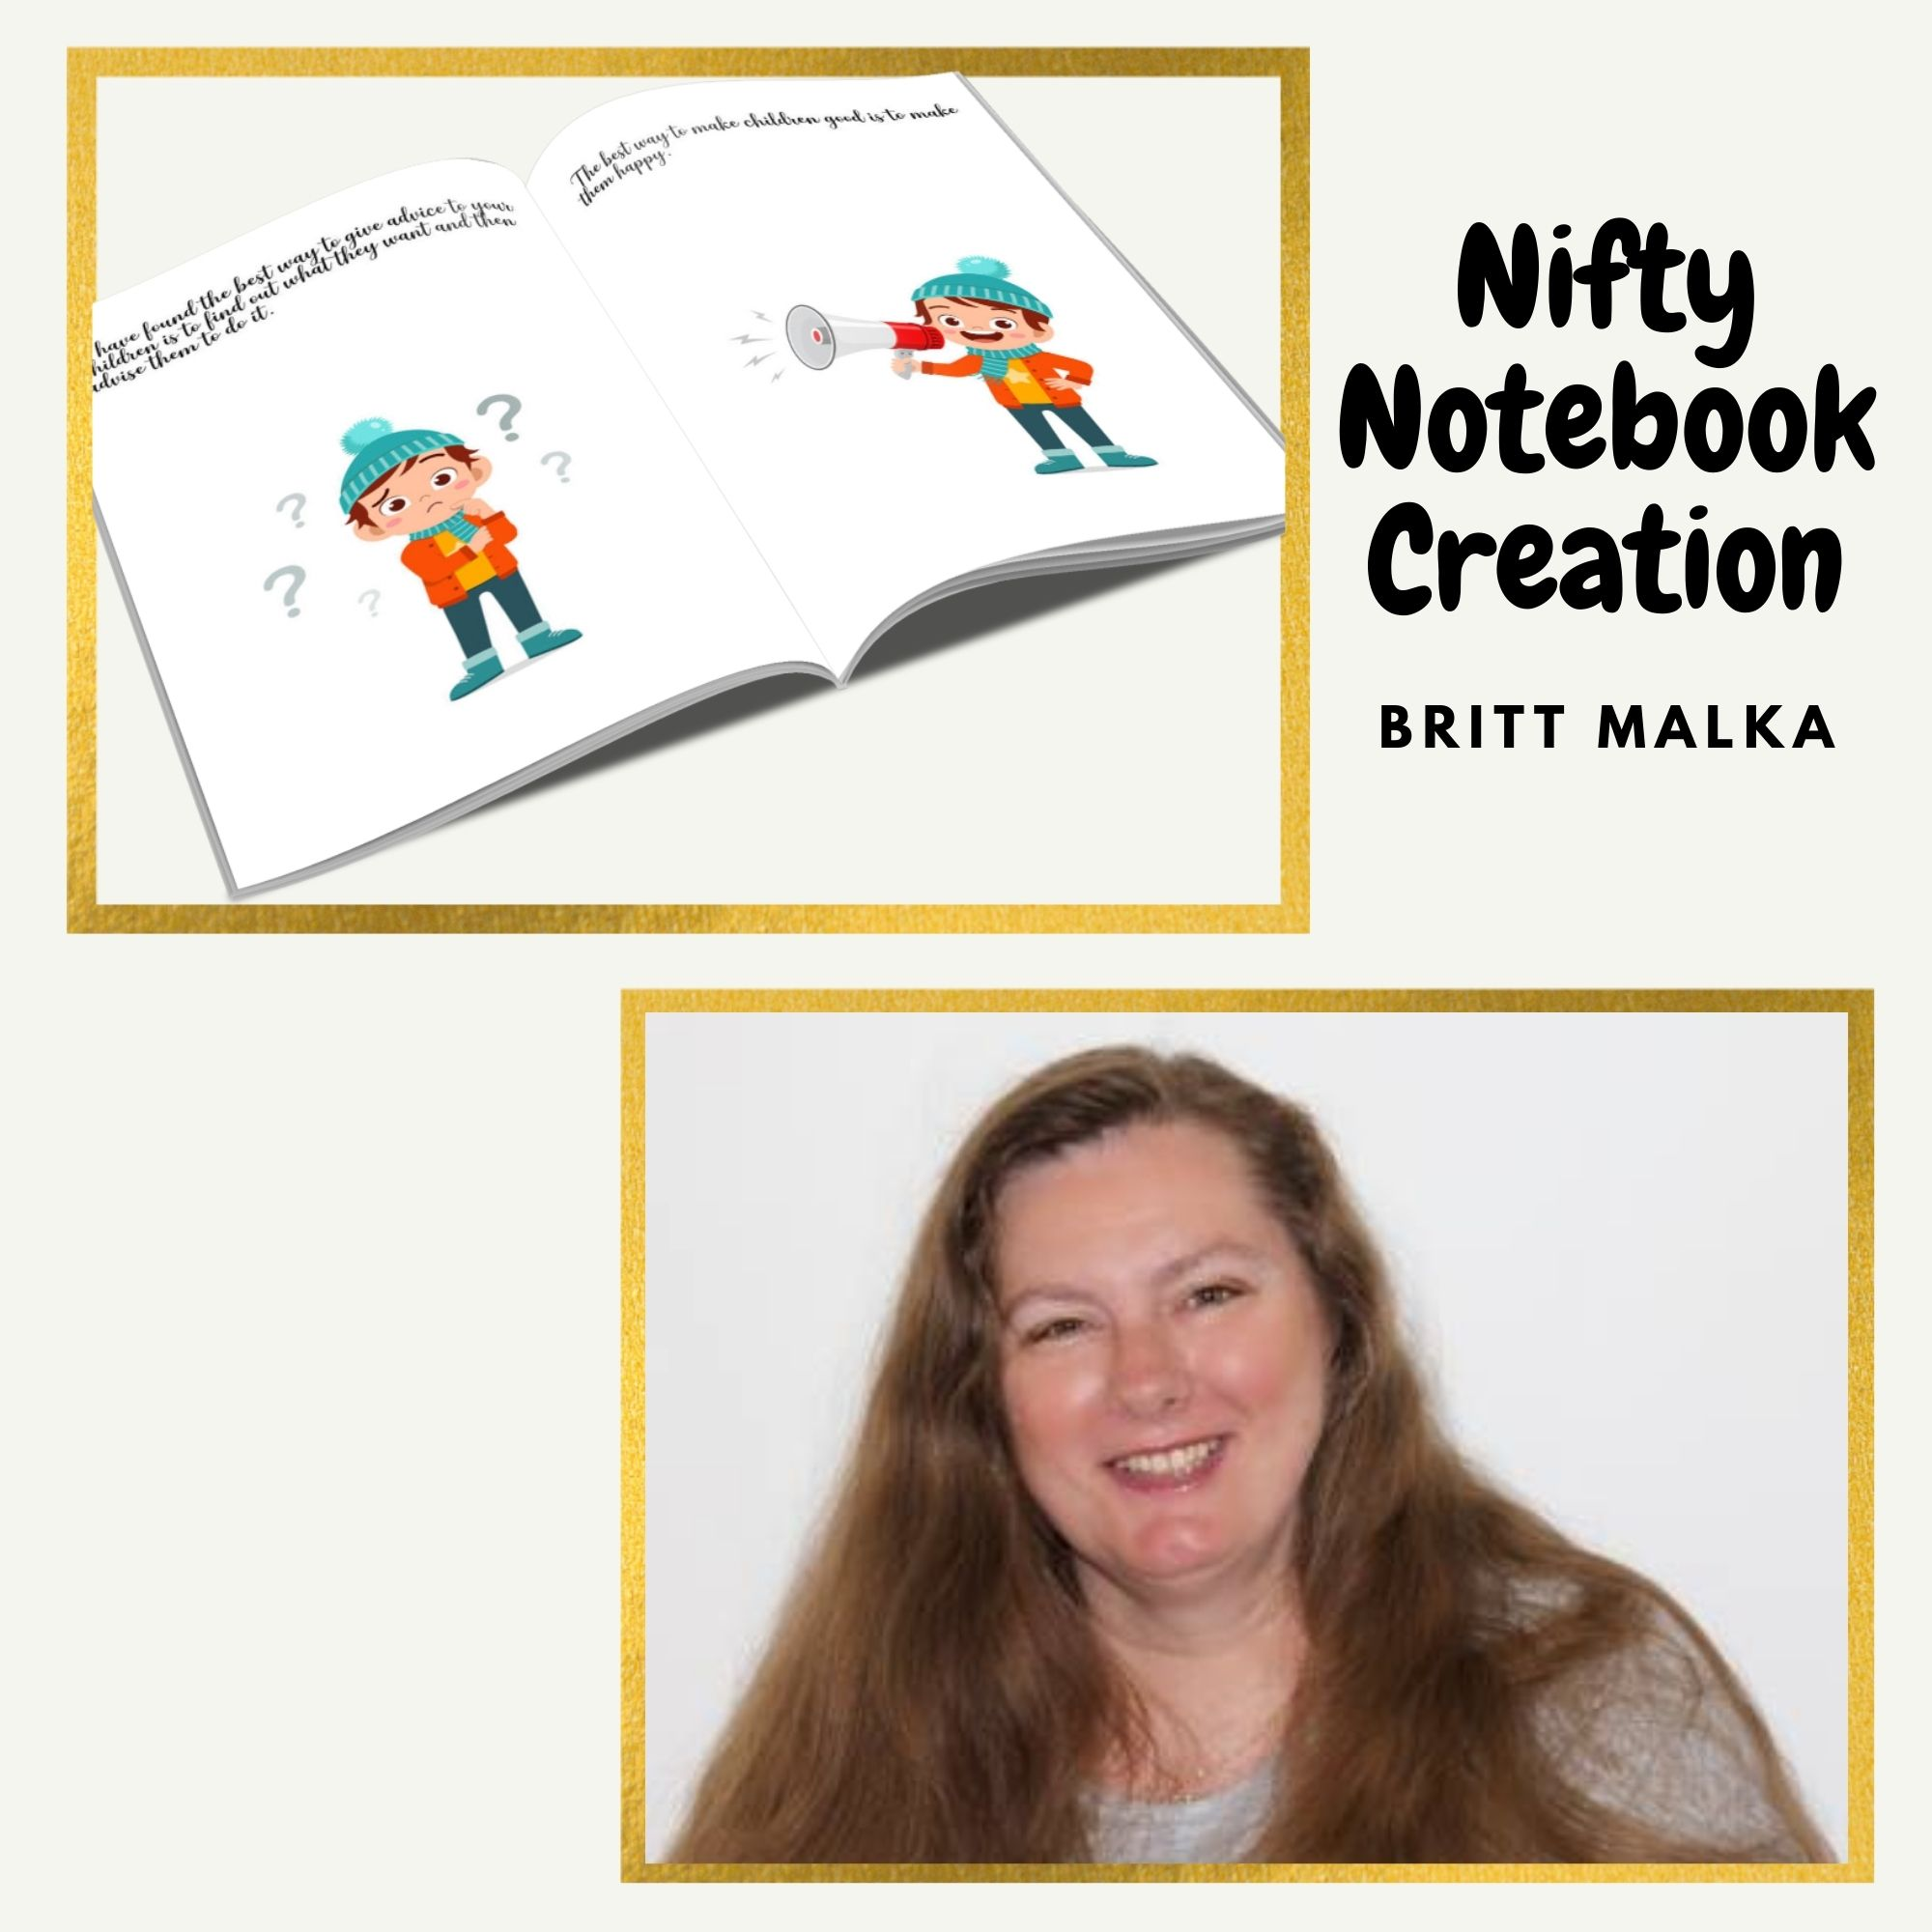 Nifty Notebook Creation